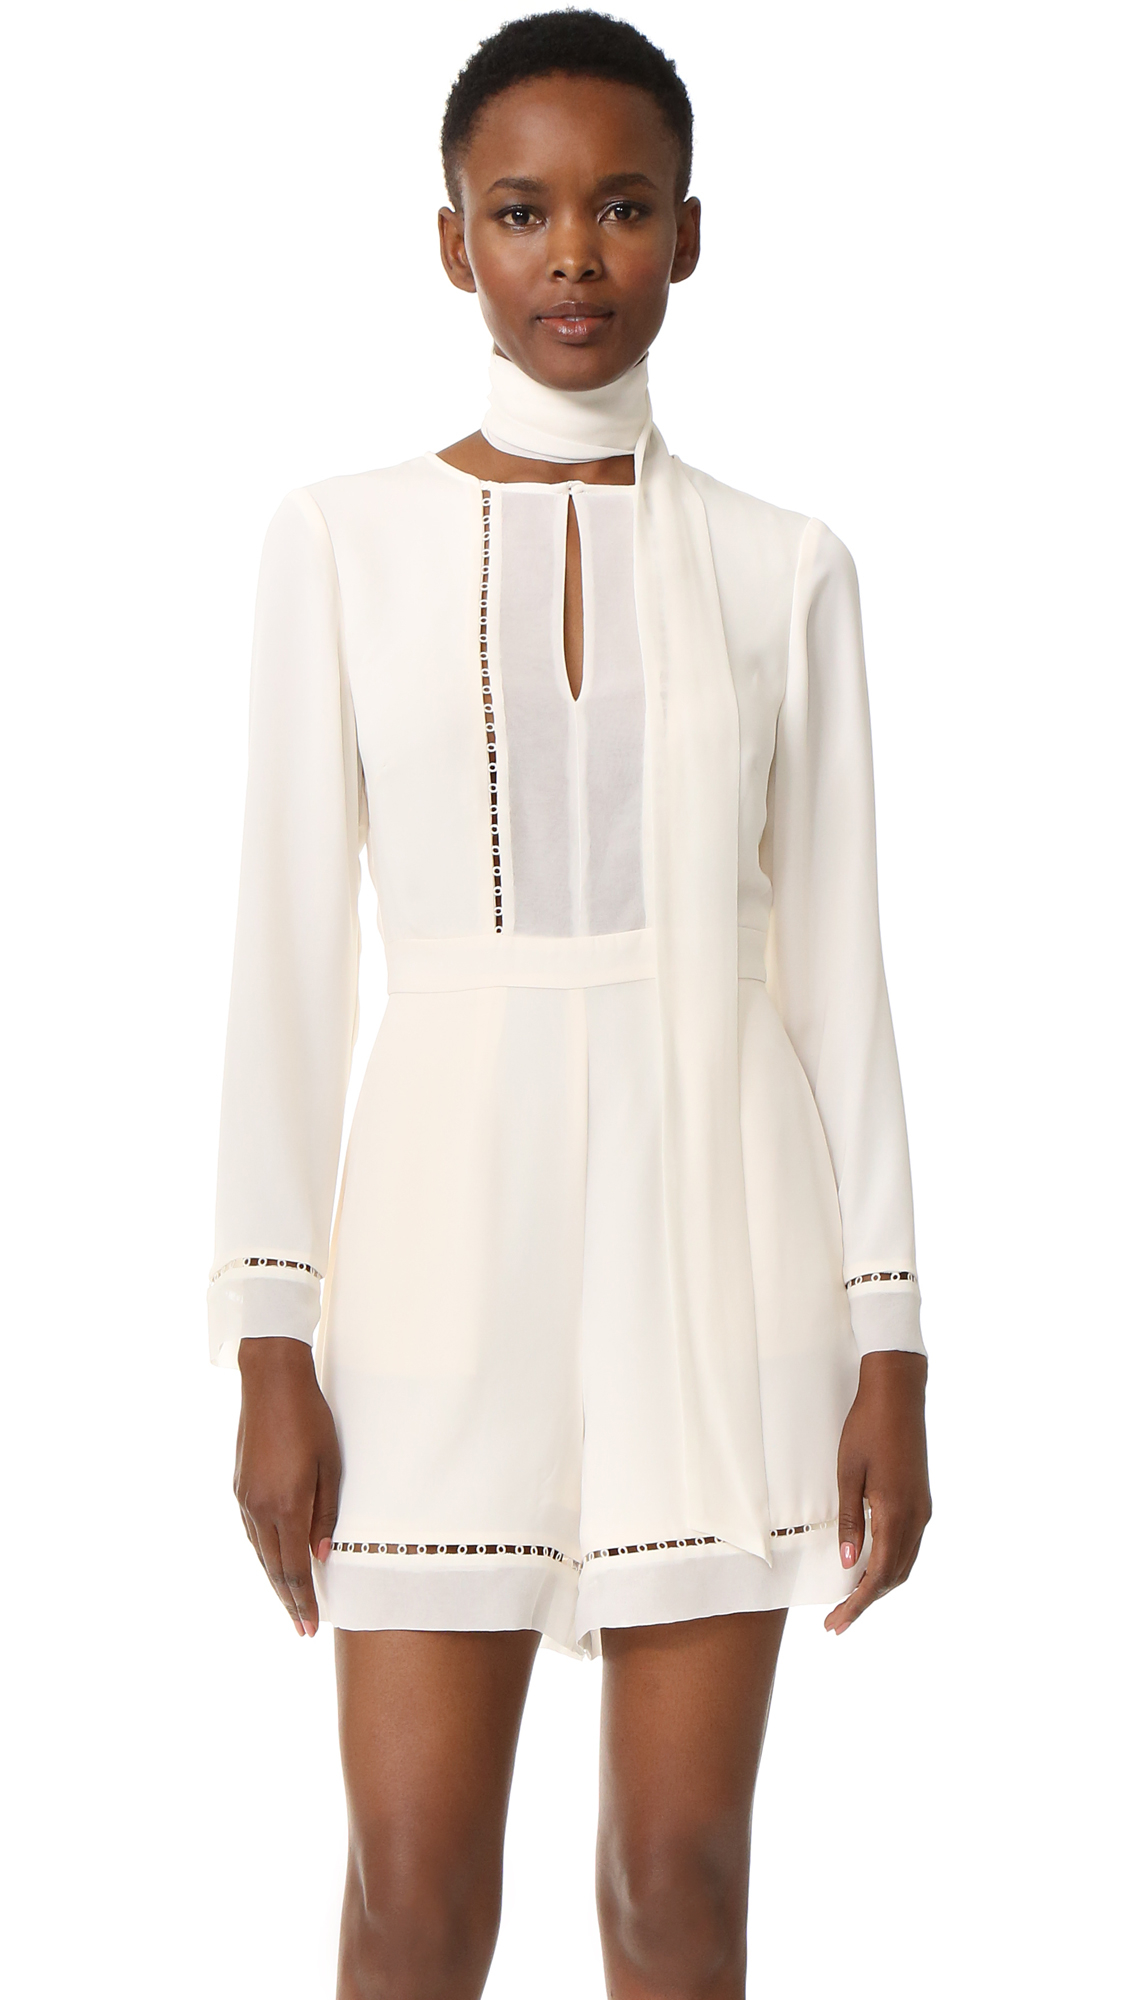 9b8de0f19956 Lyst - Zimmermann Tie Neck Playsuit in White